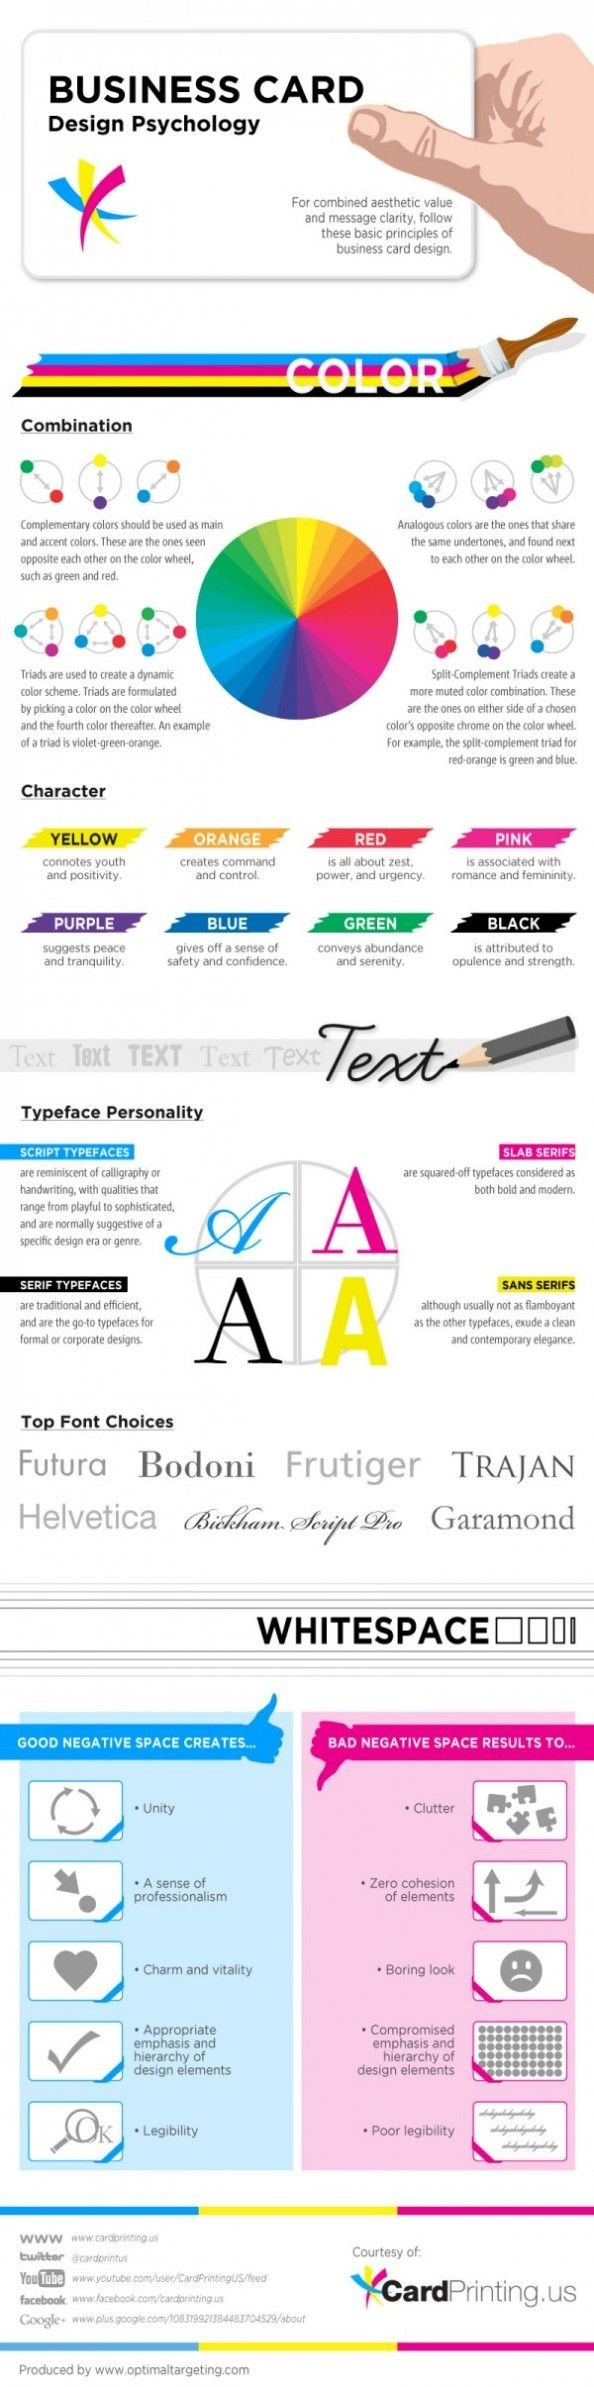 Business Card Design Psychology Infographic. You c...